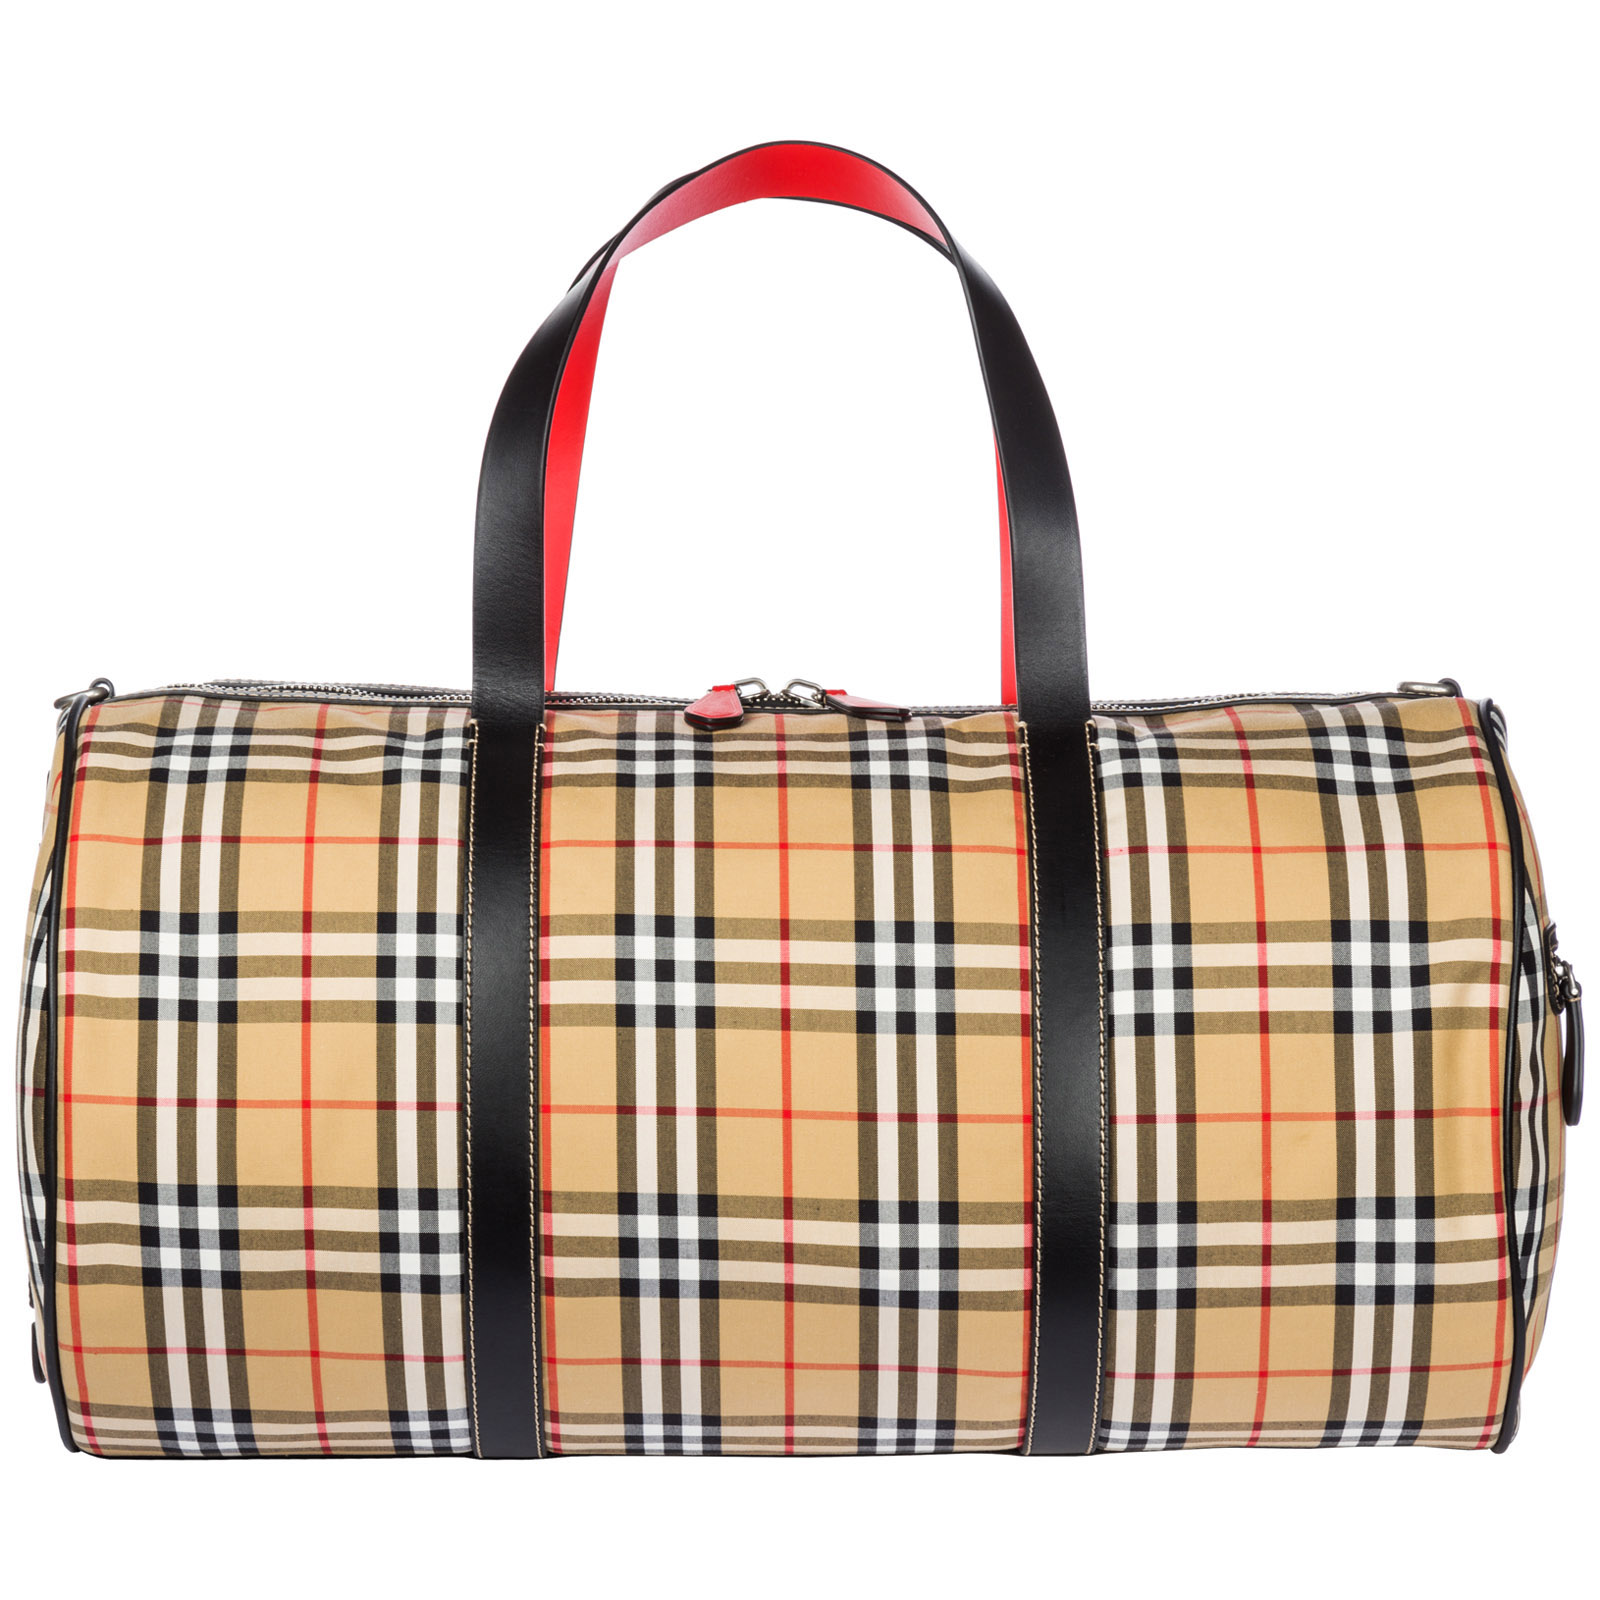 dbf716a98b3d Burberry Travel duffle weekend shoulder bag kennedy